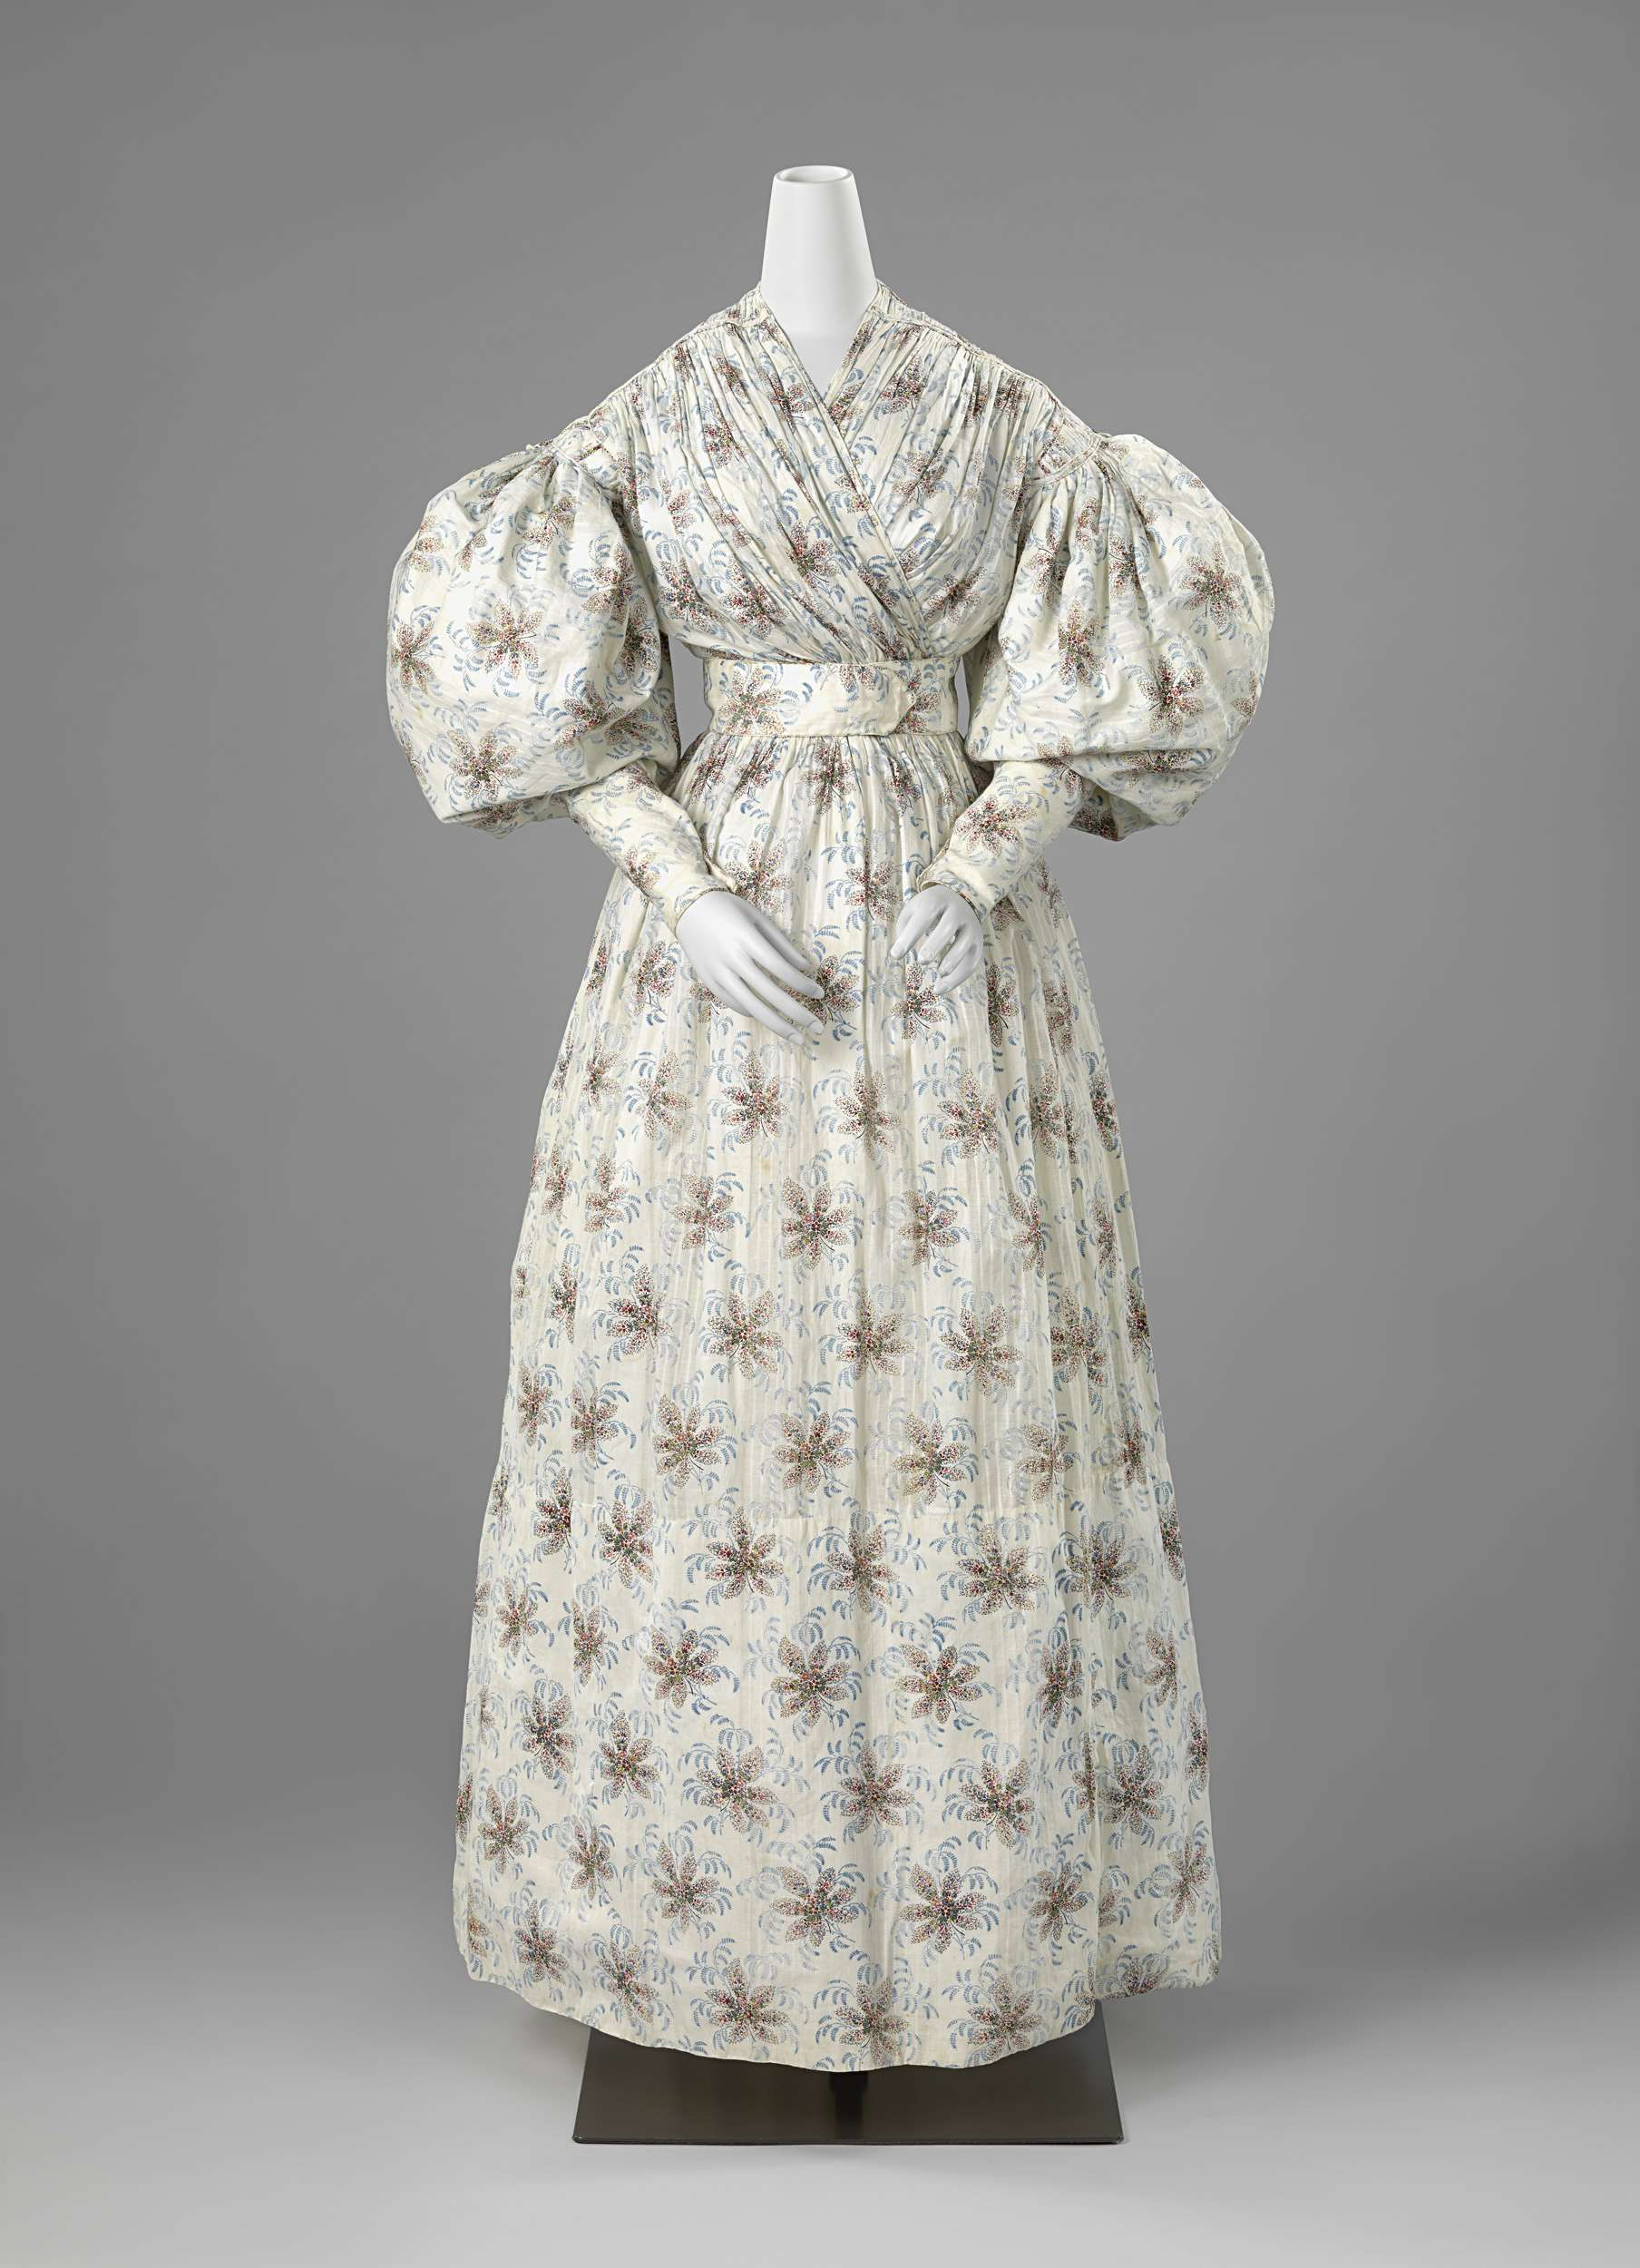 Summer Dress Of Printed Fabric C 1830 C 1832 Typical Of Fashion In The 1830s Is The So Called Leg Ofmutton Or Gi 1830s Fashion Fashion Historical Dresses [ 2500 x 1808 Pixel ]